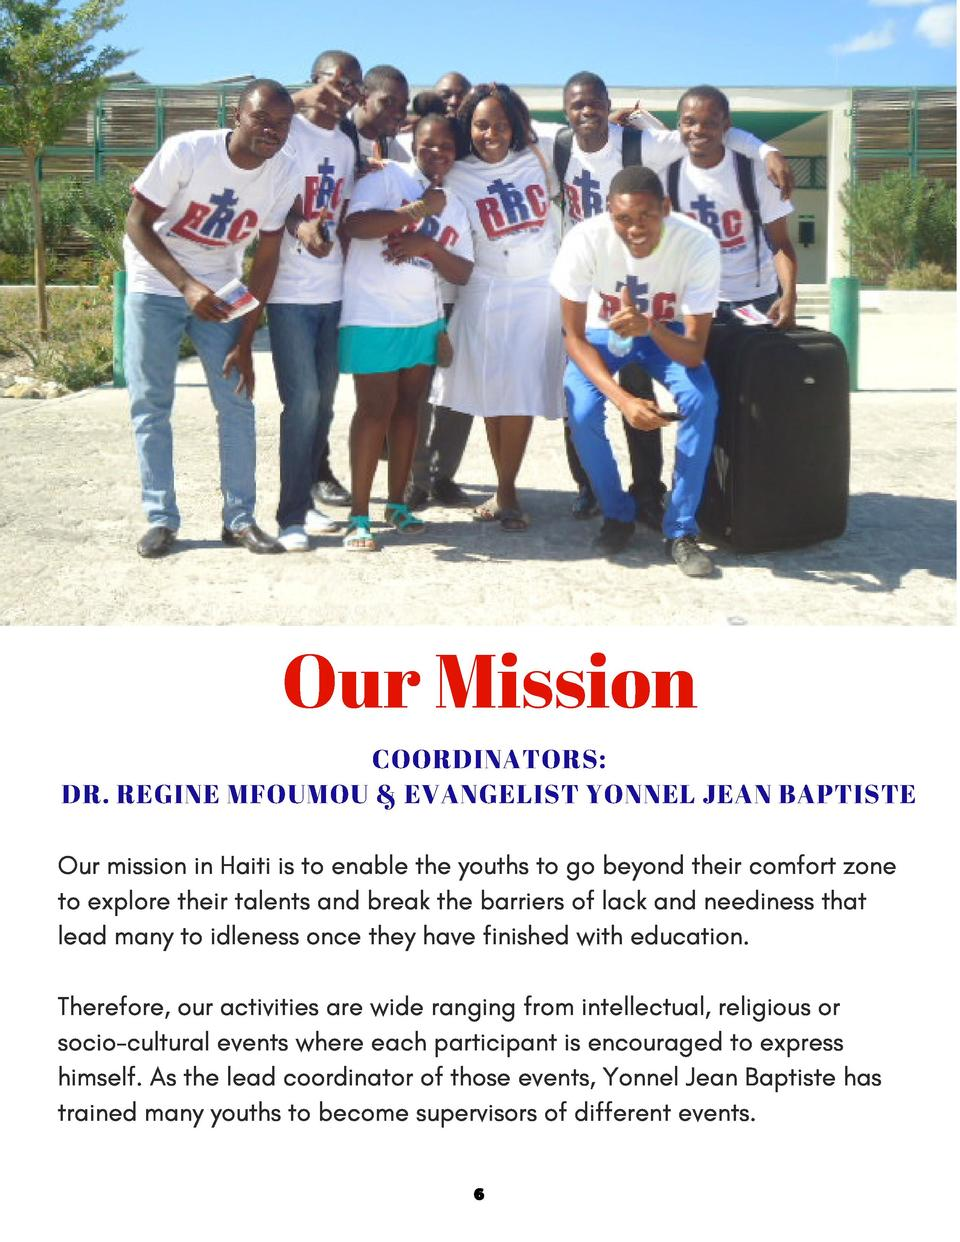 Our Mission COORDINATORS  DR. REGINE MFOUMOU   EVANGELIST YONNEL JEAN  BAPTISTE Our mission in Haiti is to enable the yout...